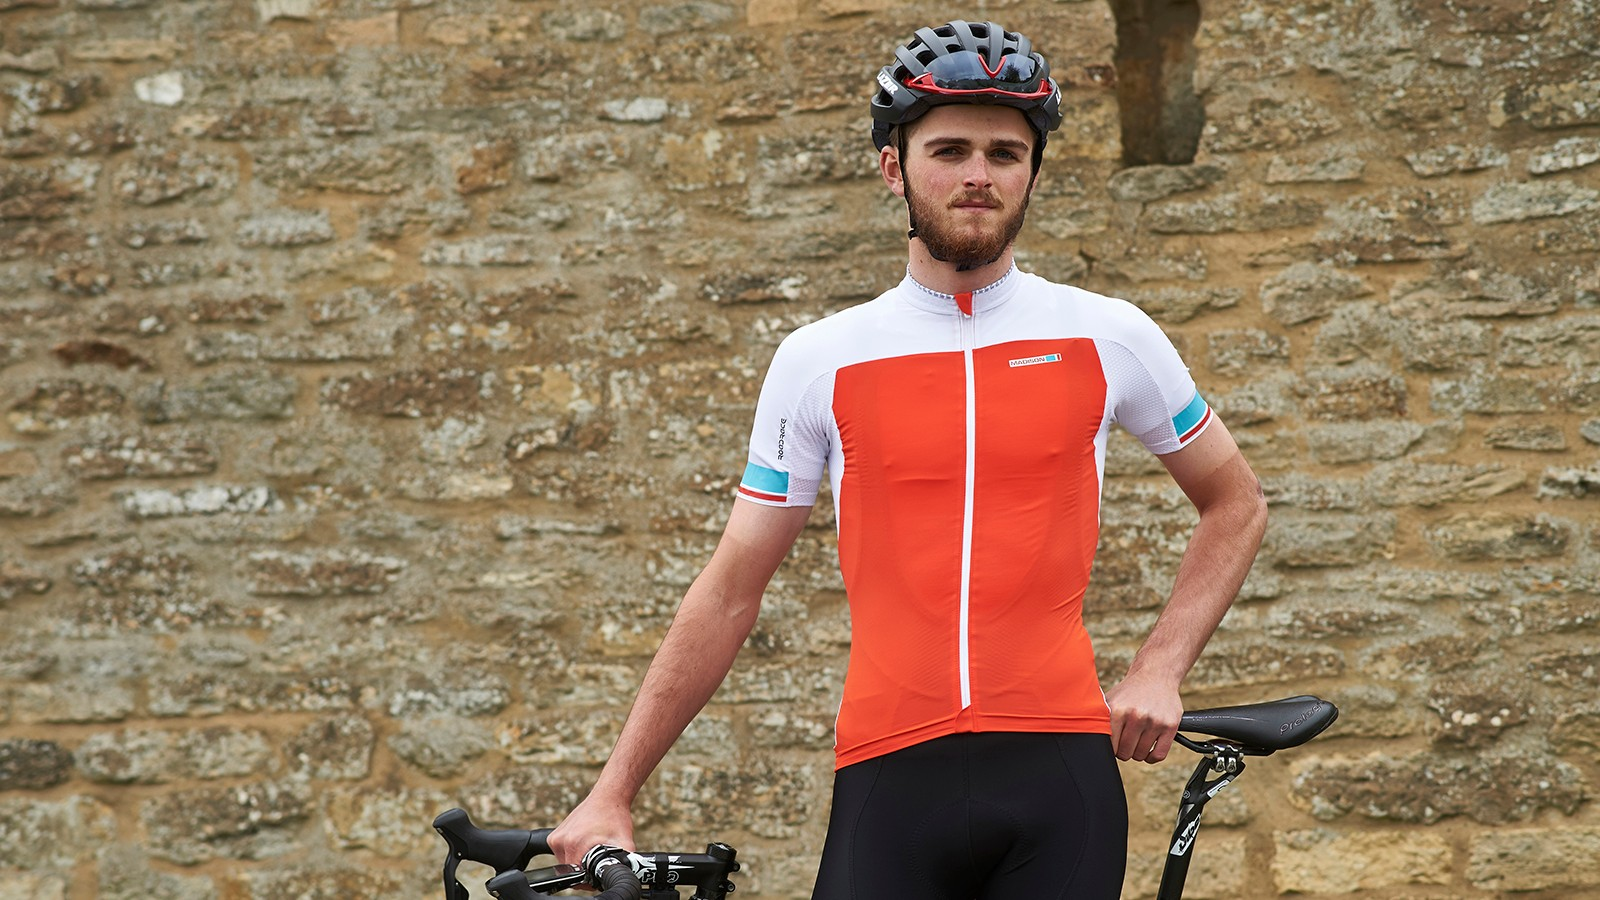 Madison's Road Race Premio kit is its top-of-the-range road cycling apparel